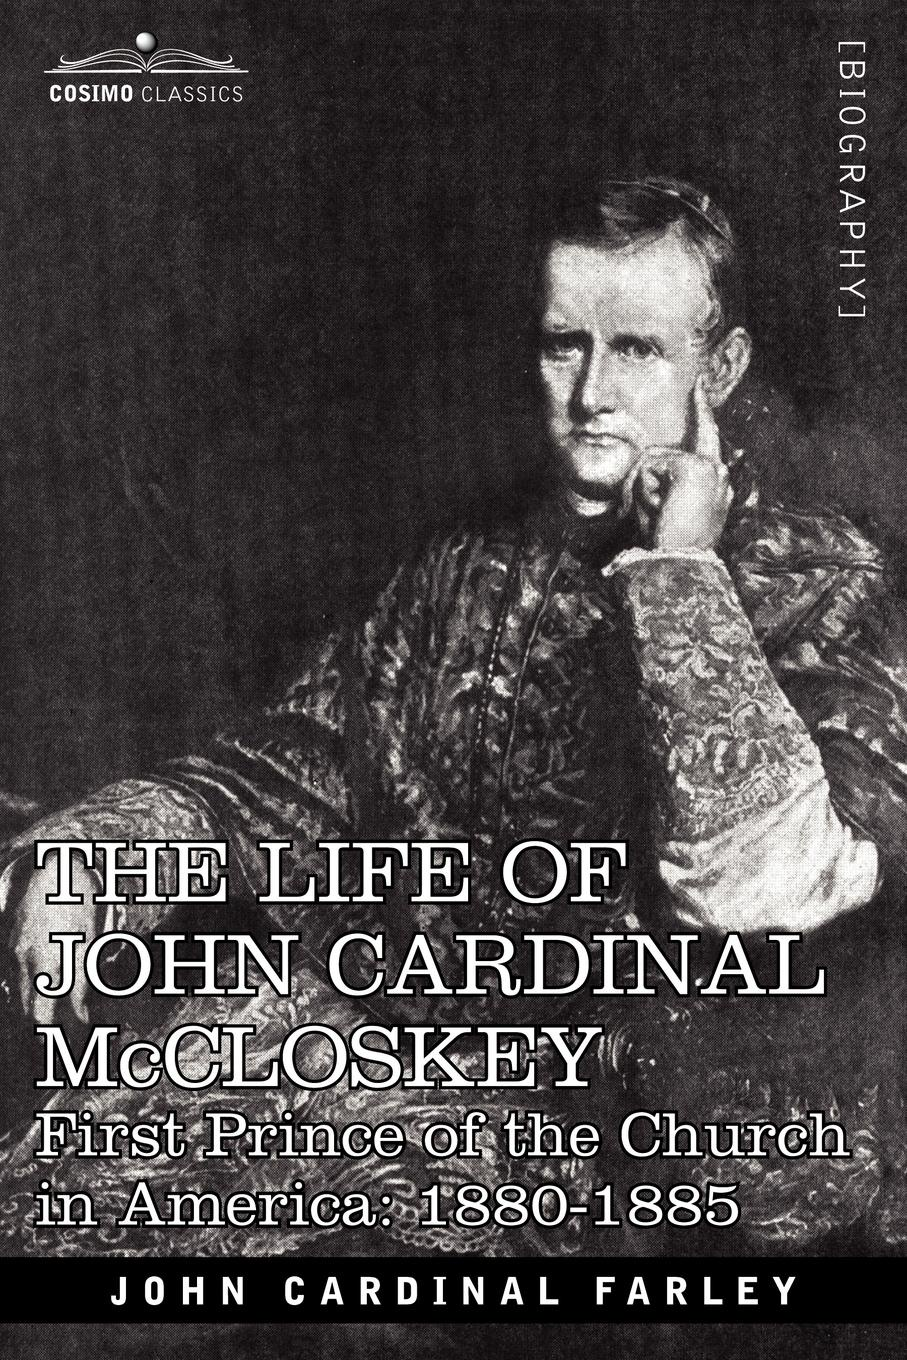 John Cardinal Farley The Life of John Cardinal McCloskey. First Prince of the Church in America: 1880-1885 зарядное устройство jj connect energomax universal для свинцово кислотных акб